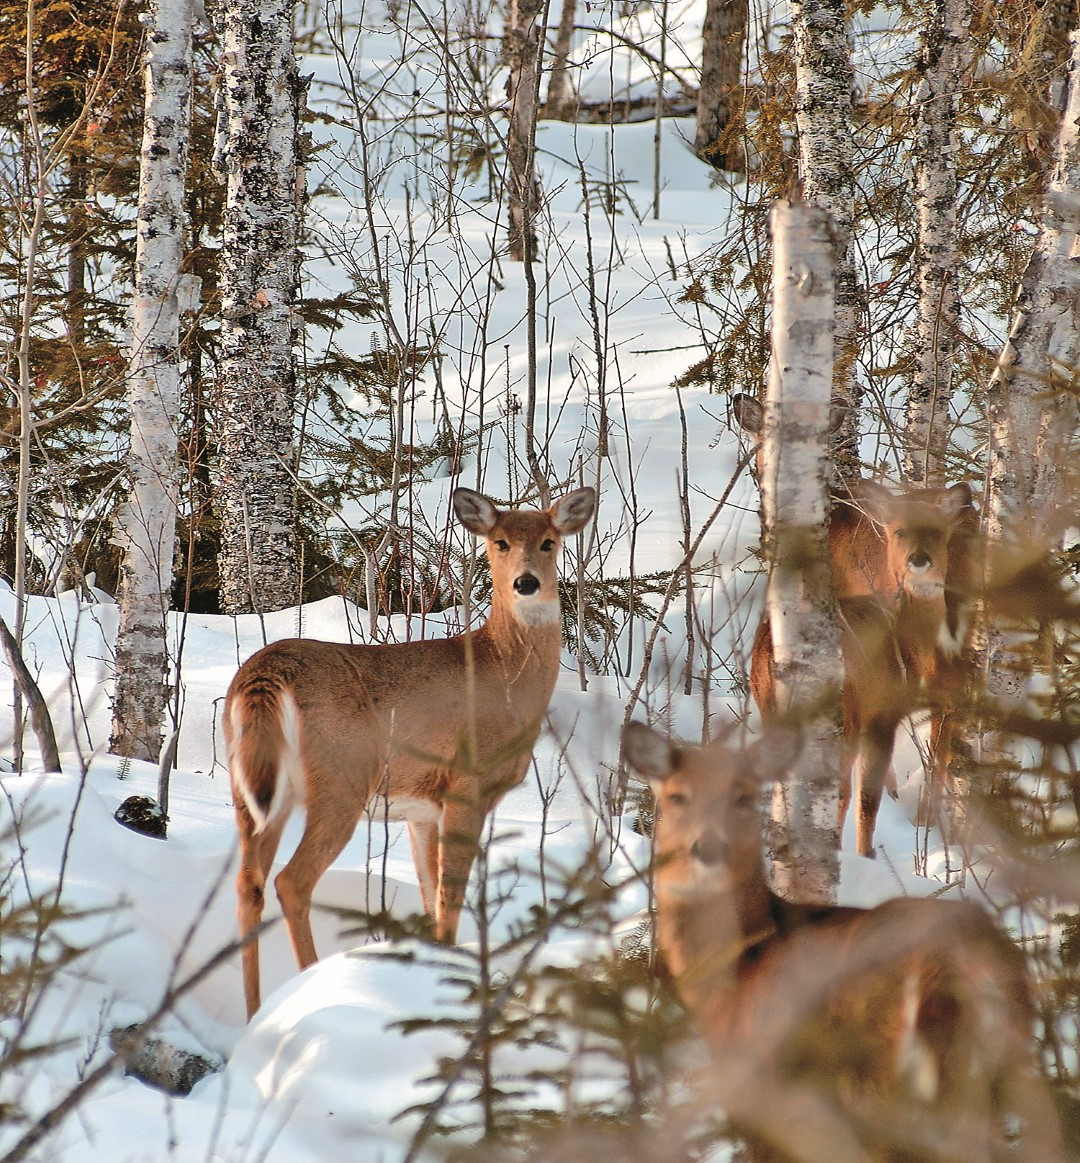 Whitetail deer forage amid the snow beside the Gunflint Trail. Photo courtesy Explore Minnesota Tourism.